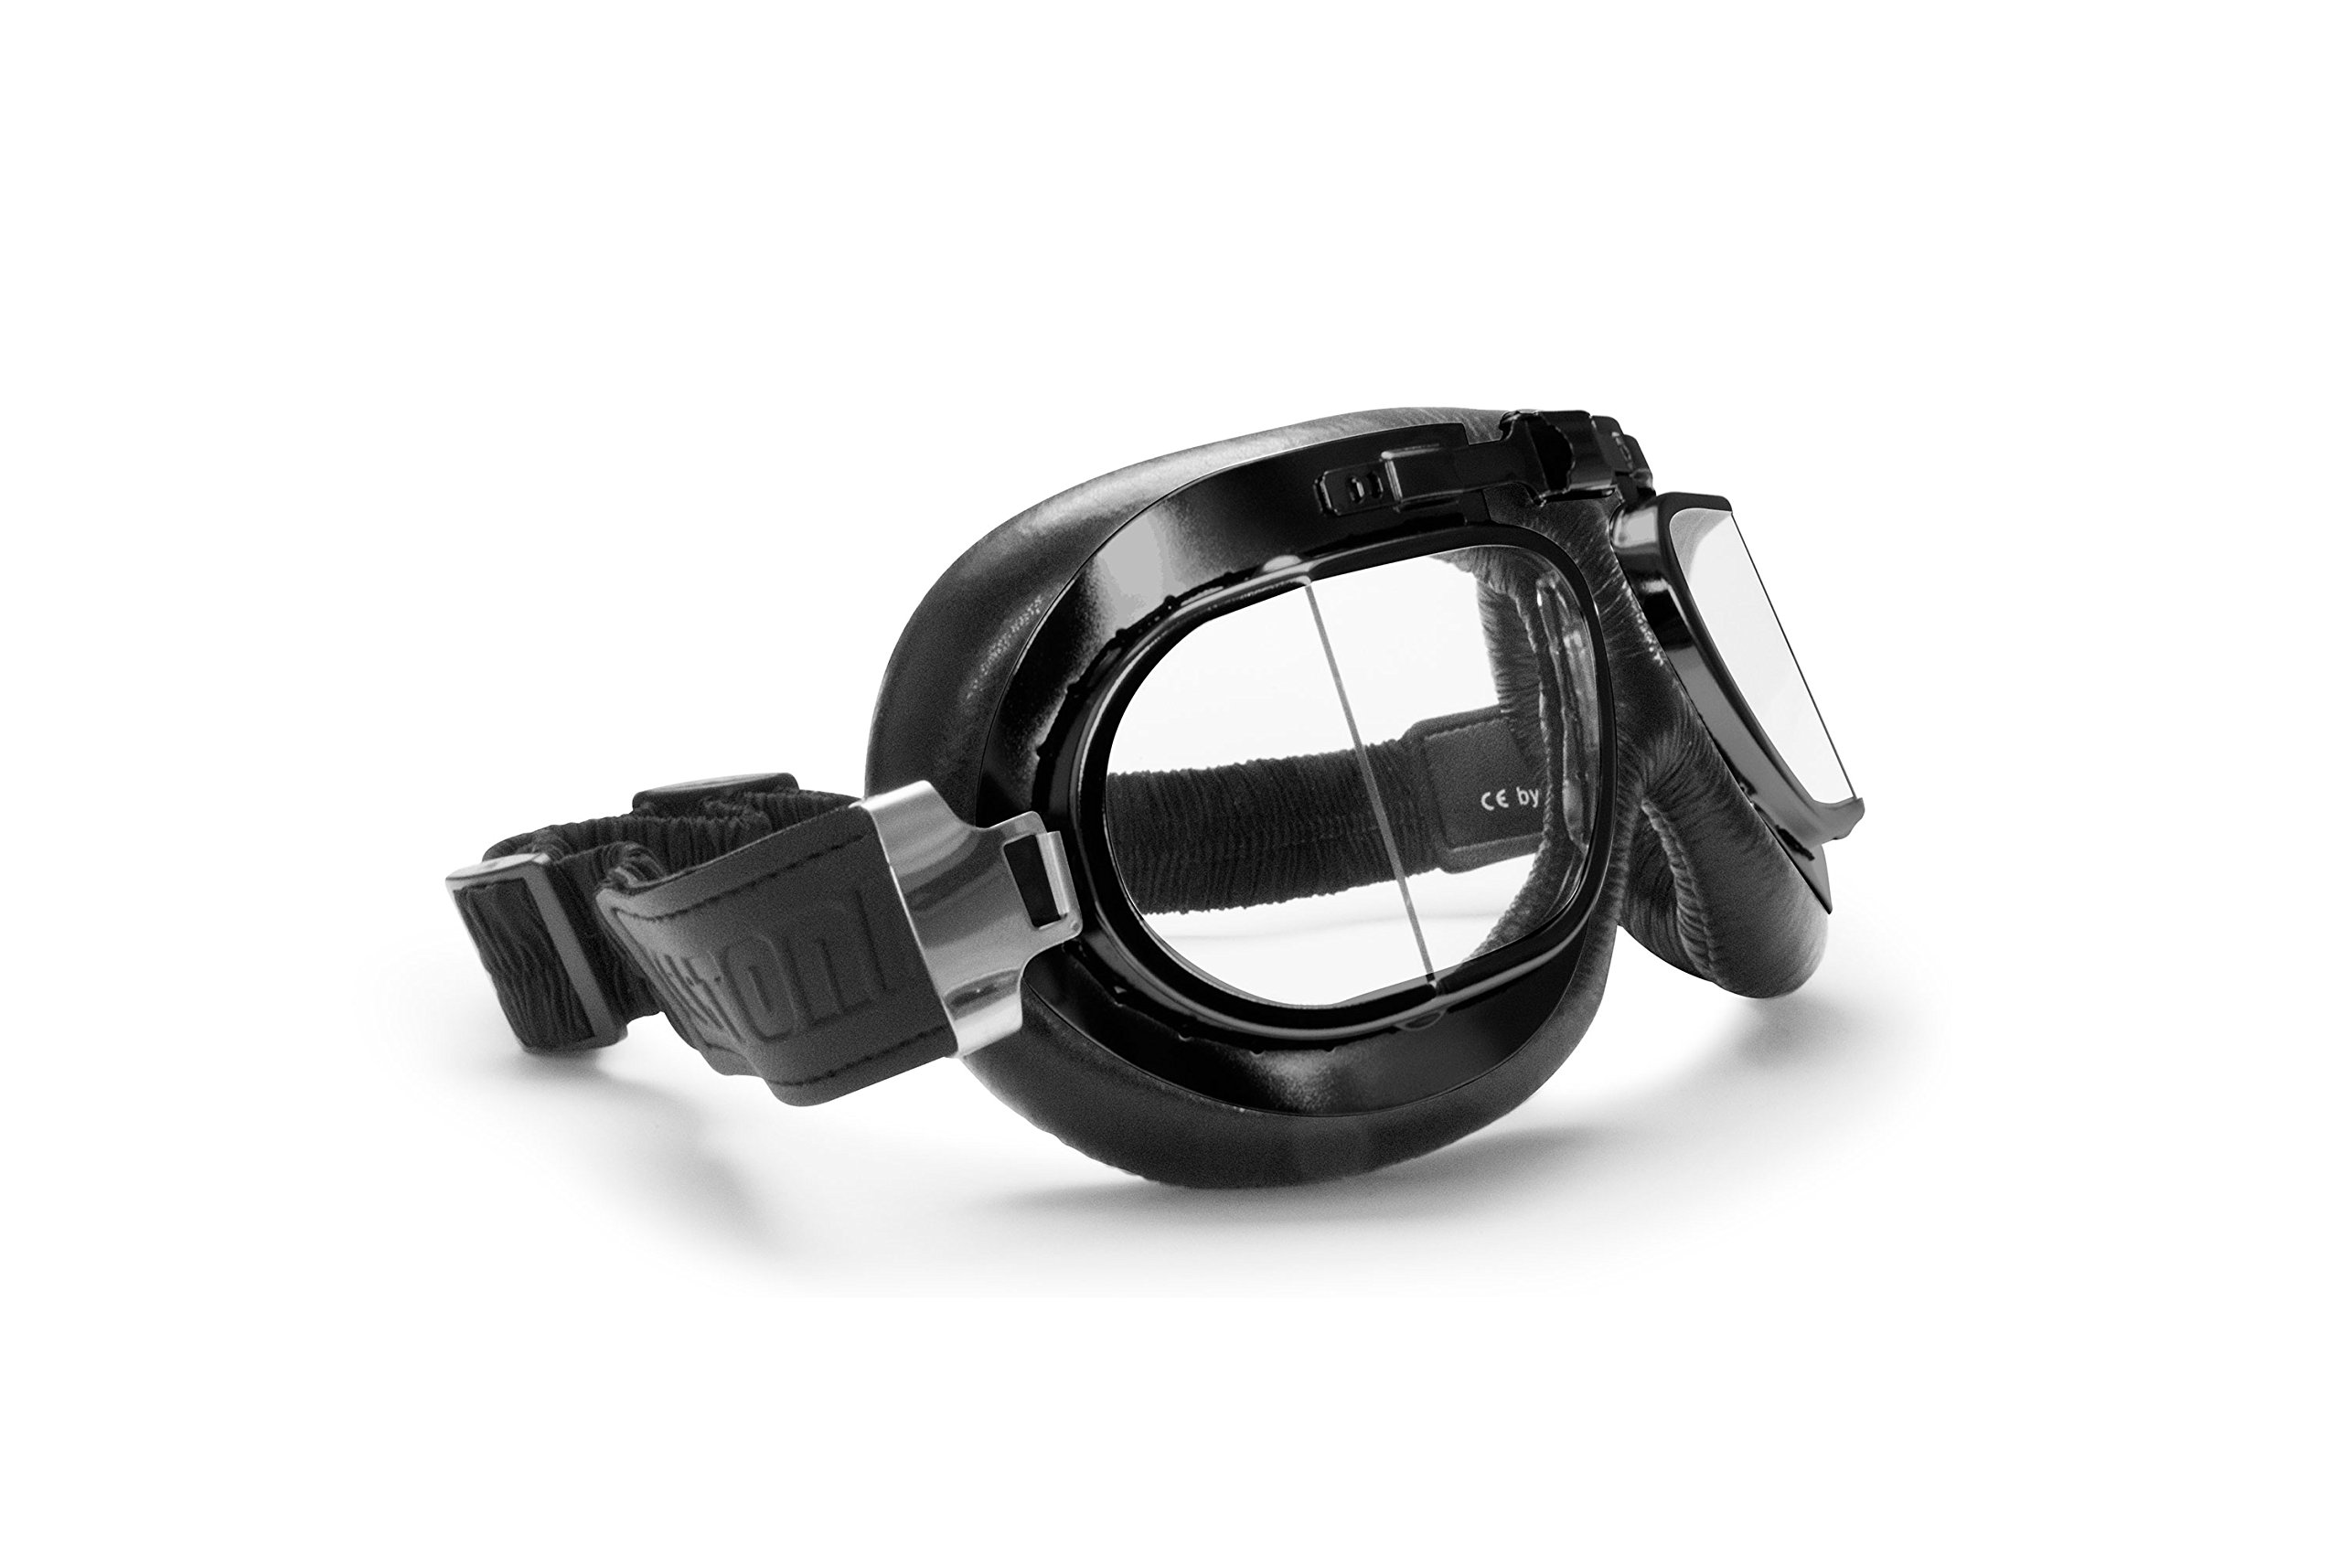 Bertoni Vintage Motorcycle Goggles with Antifog and Anticrash Squared Lenses - Matt Black Steel Rim - AF193A Motorbike Aviator Goggles Italy by Bertoni